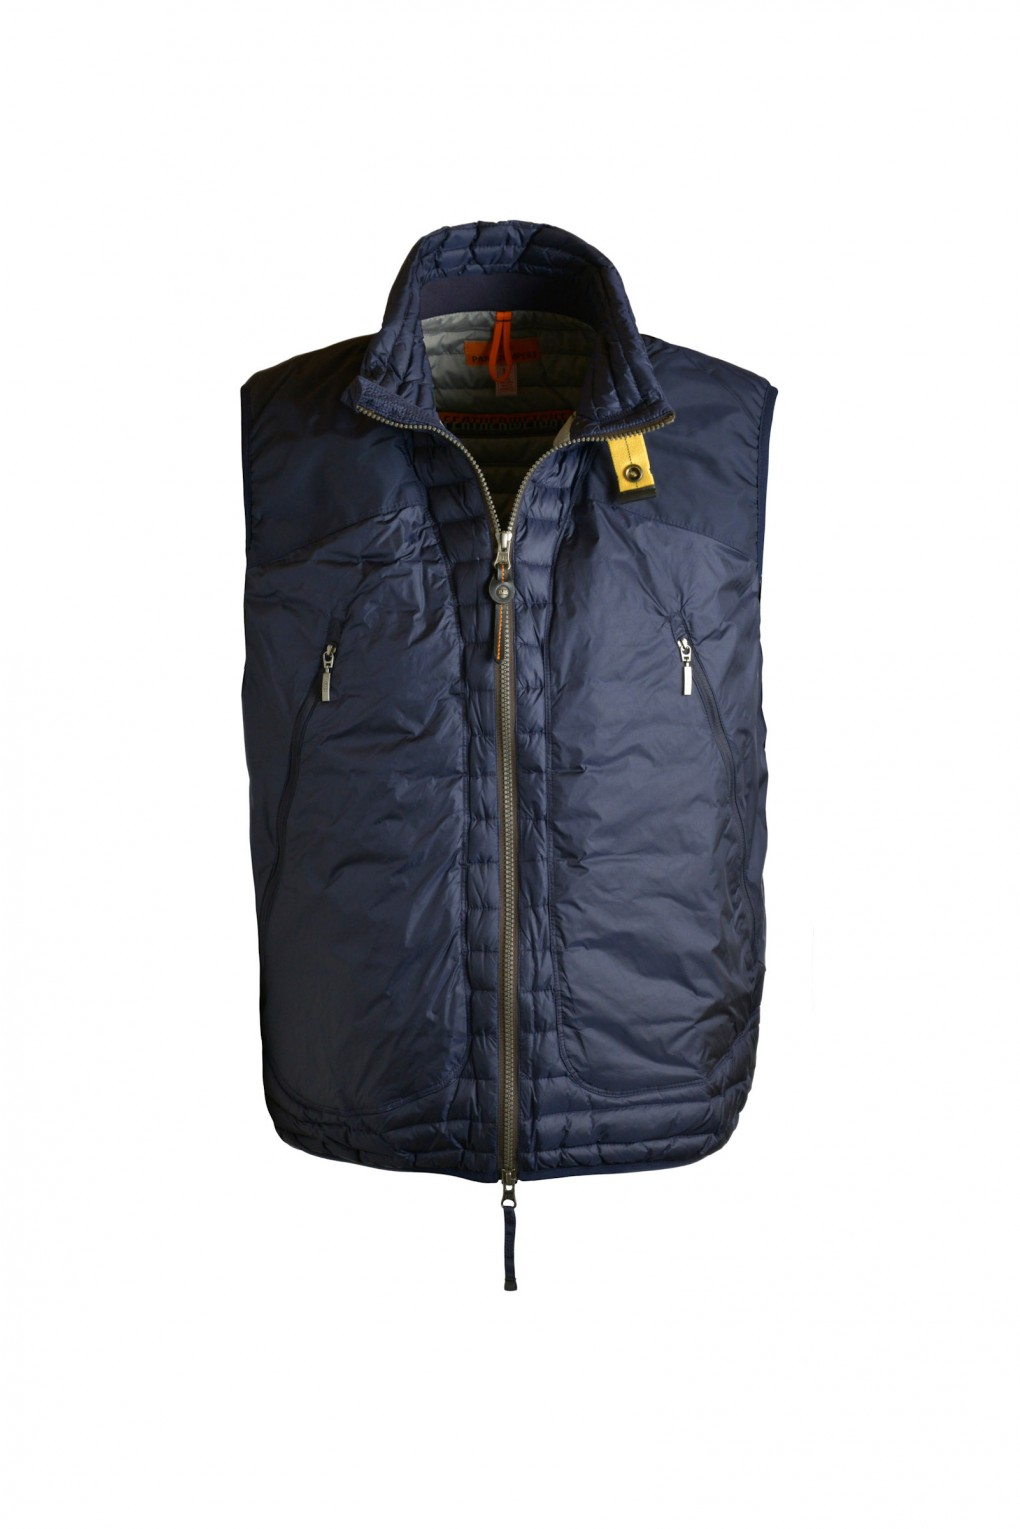 parajumpers HERMANN man outerwear Marine